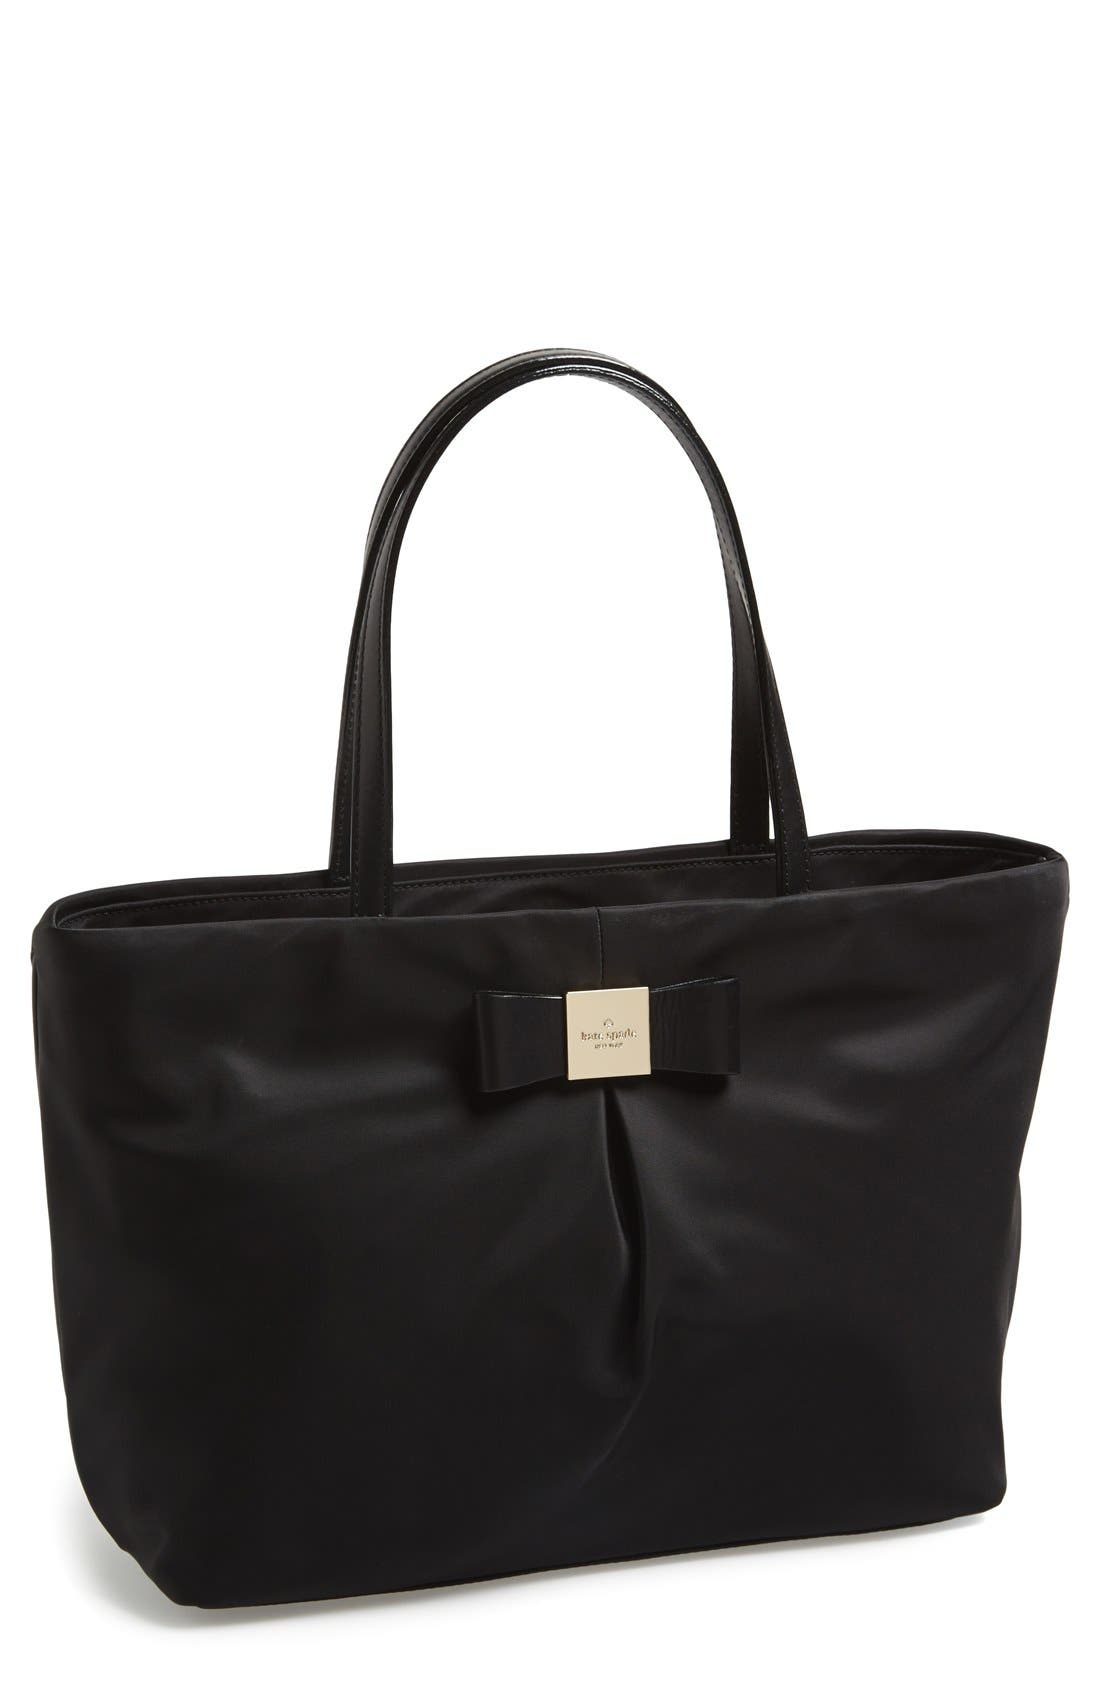 Alternate Image 1 Selected - kate spade new york 'small evie' tote